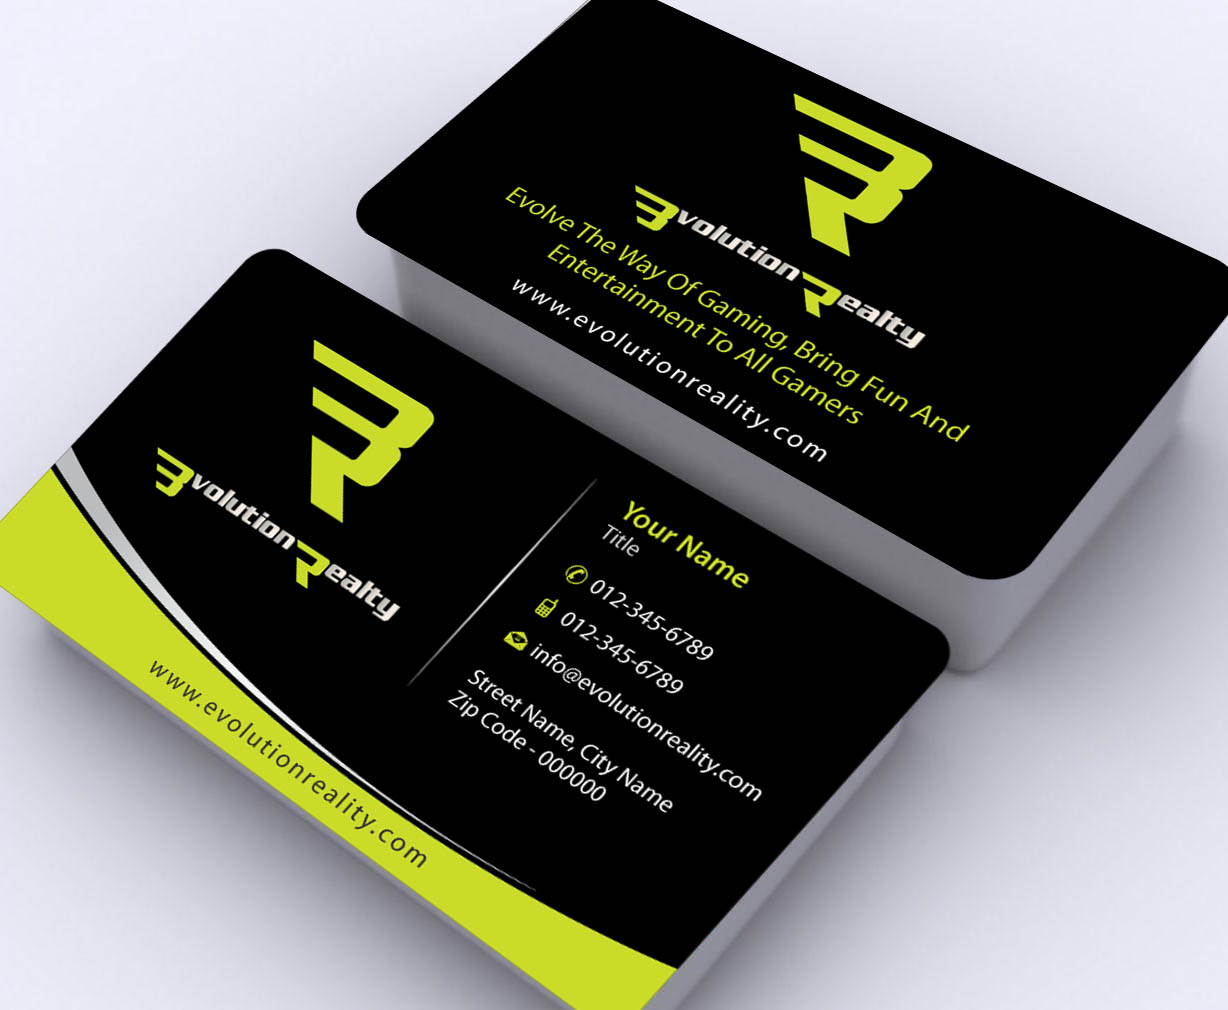 Entertainment Business Card Design for a Company by Sbss | Design ...